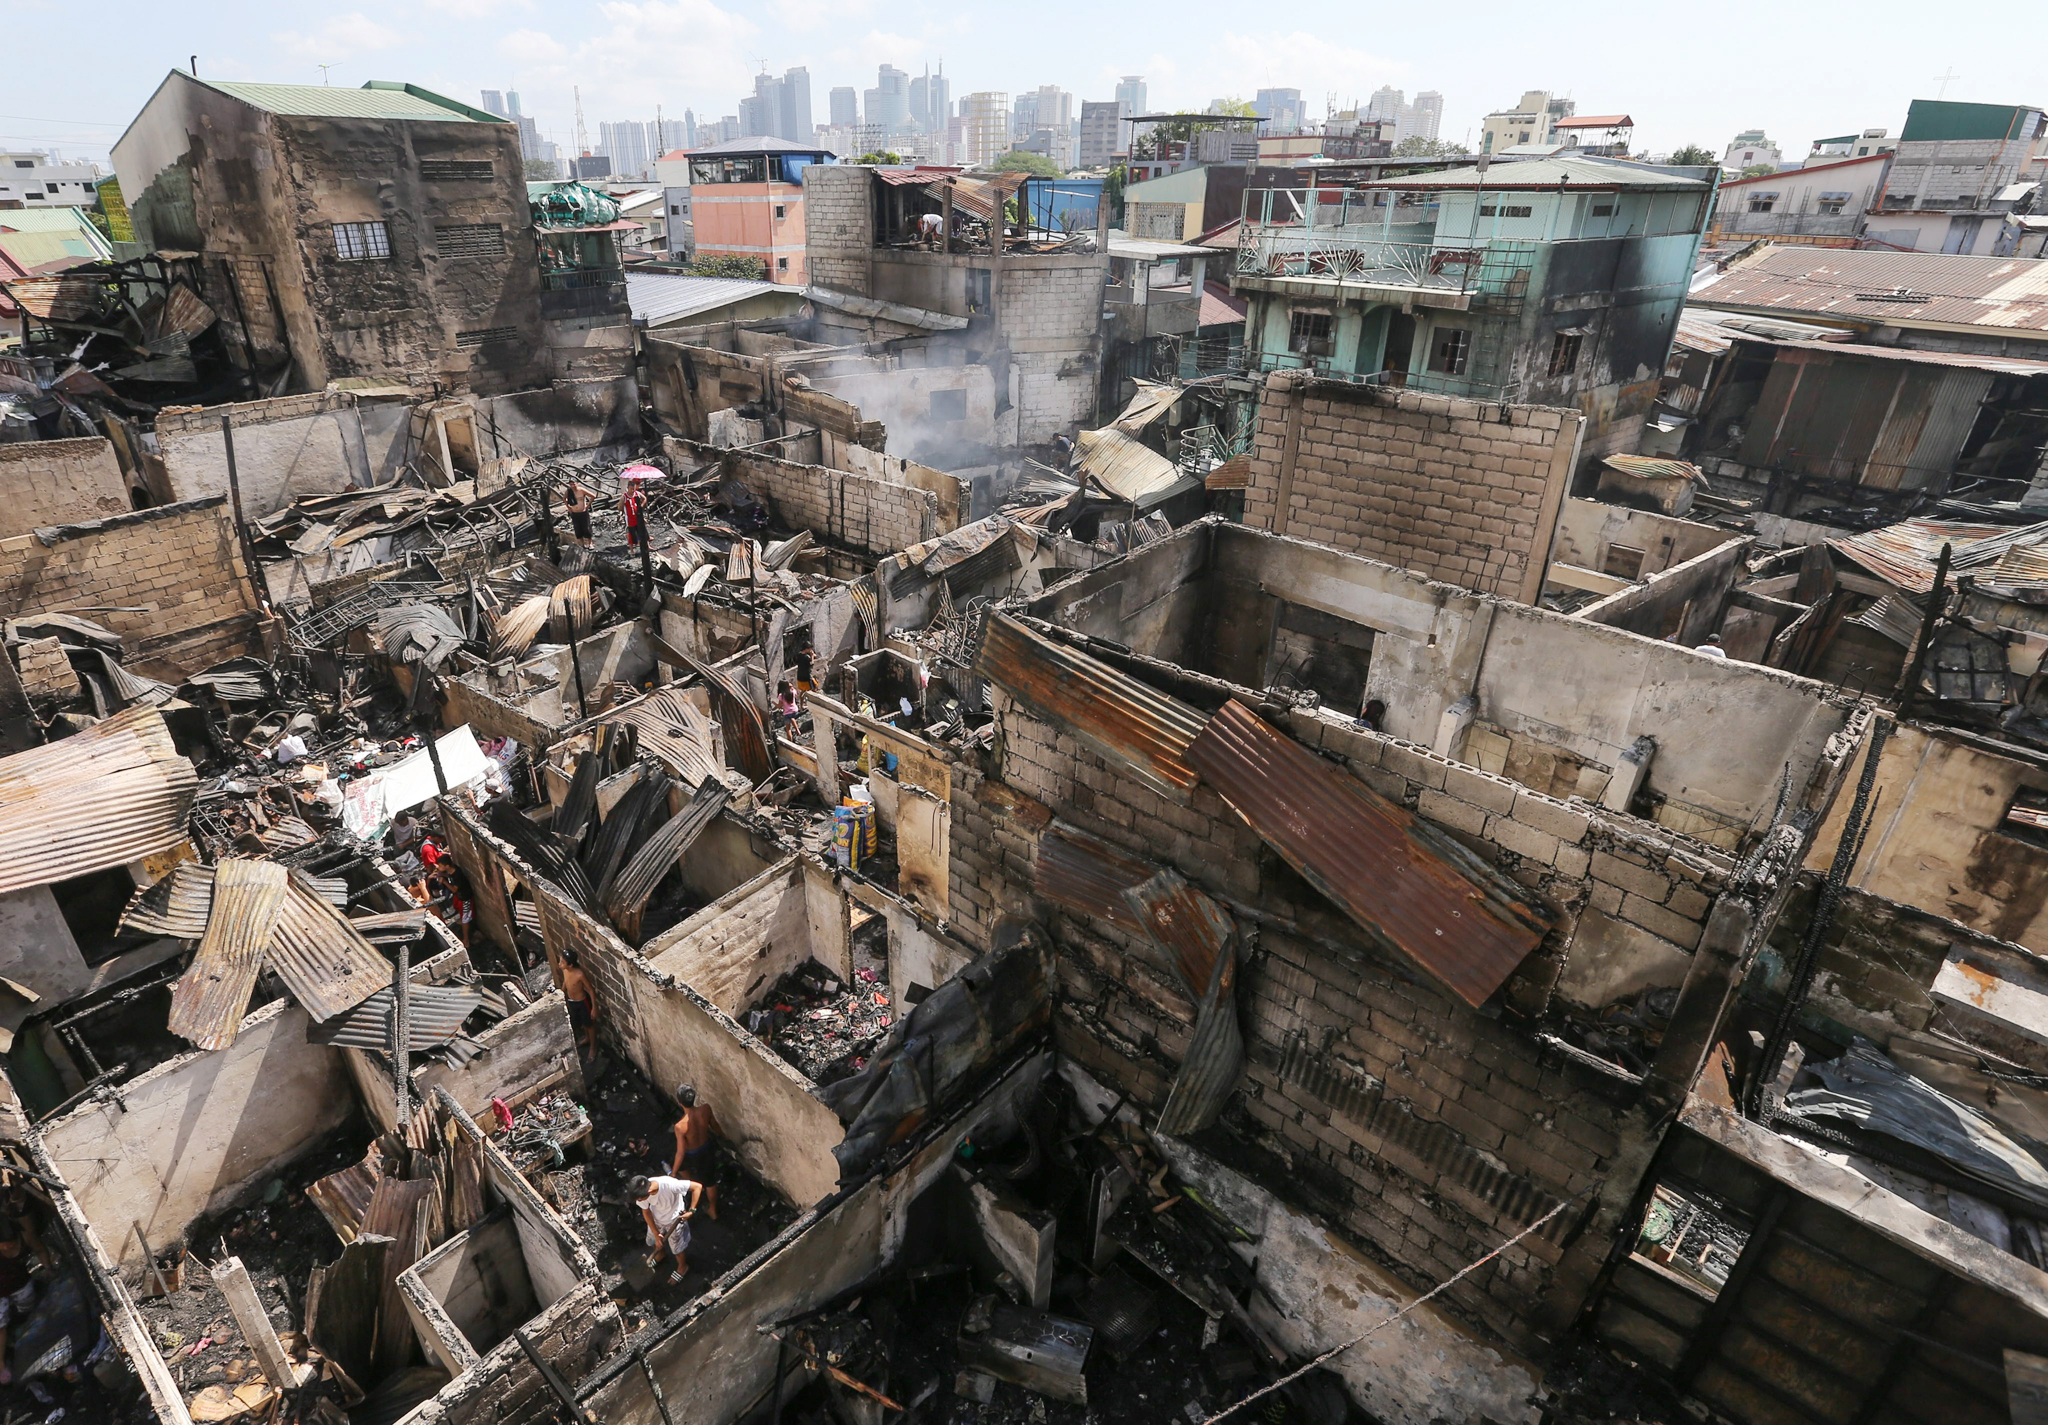 Fire in Manila leaves 80 families homeless...epa05115144 Filipinos search for salvageable materials following a fire in Manila, Philippines, 21 January 2016. The fire which hit a residential area in Manila left 80 families homeless according to local reports.  EPA/MARK R. CRISTINO